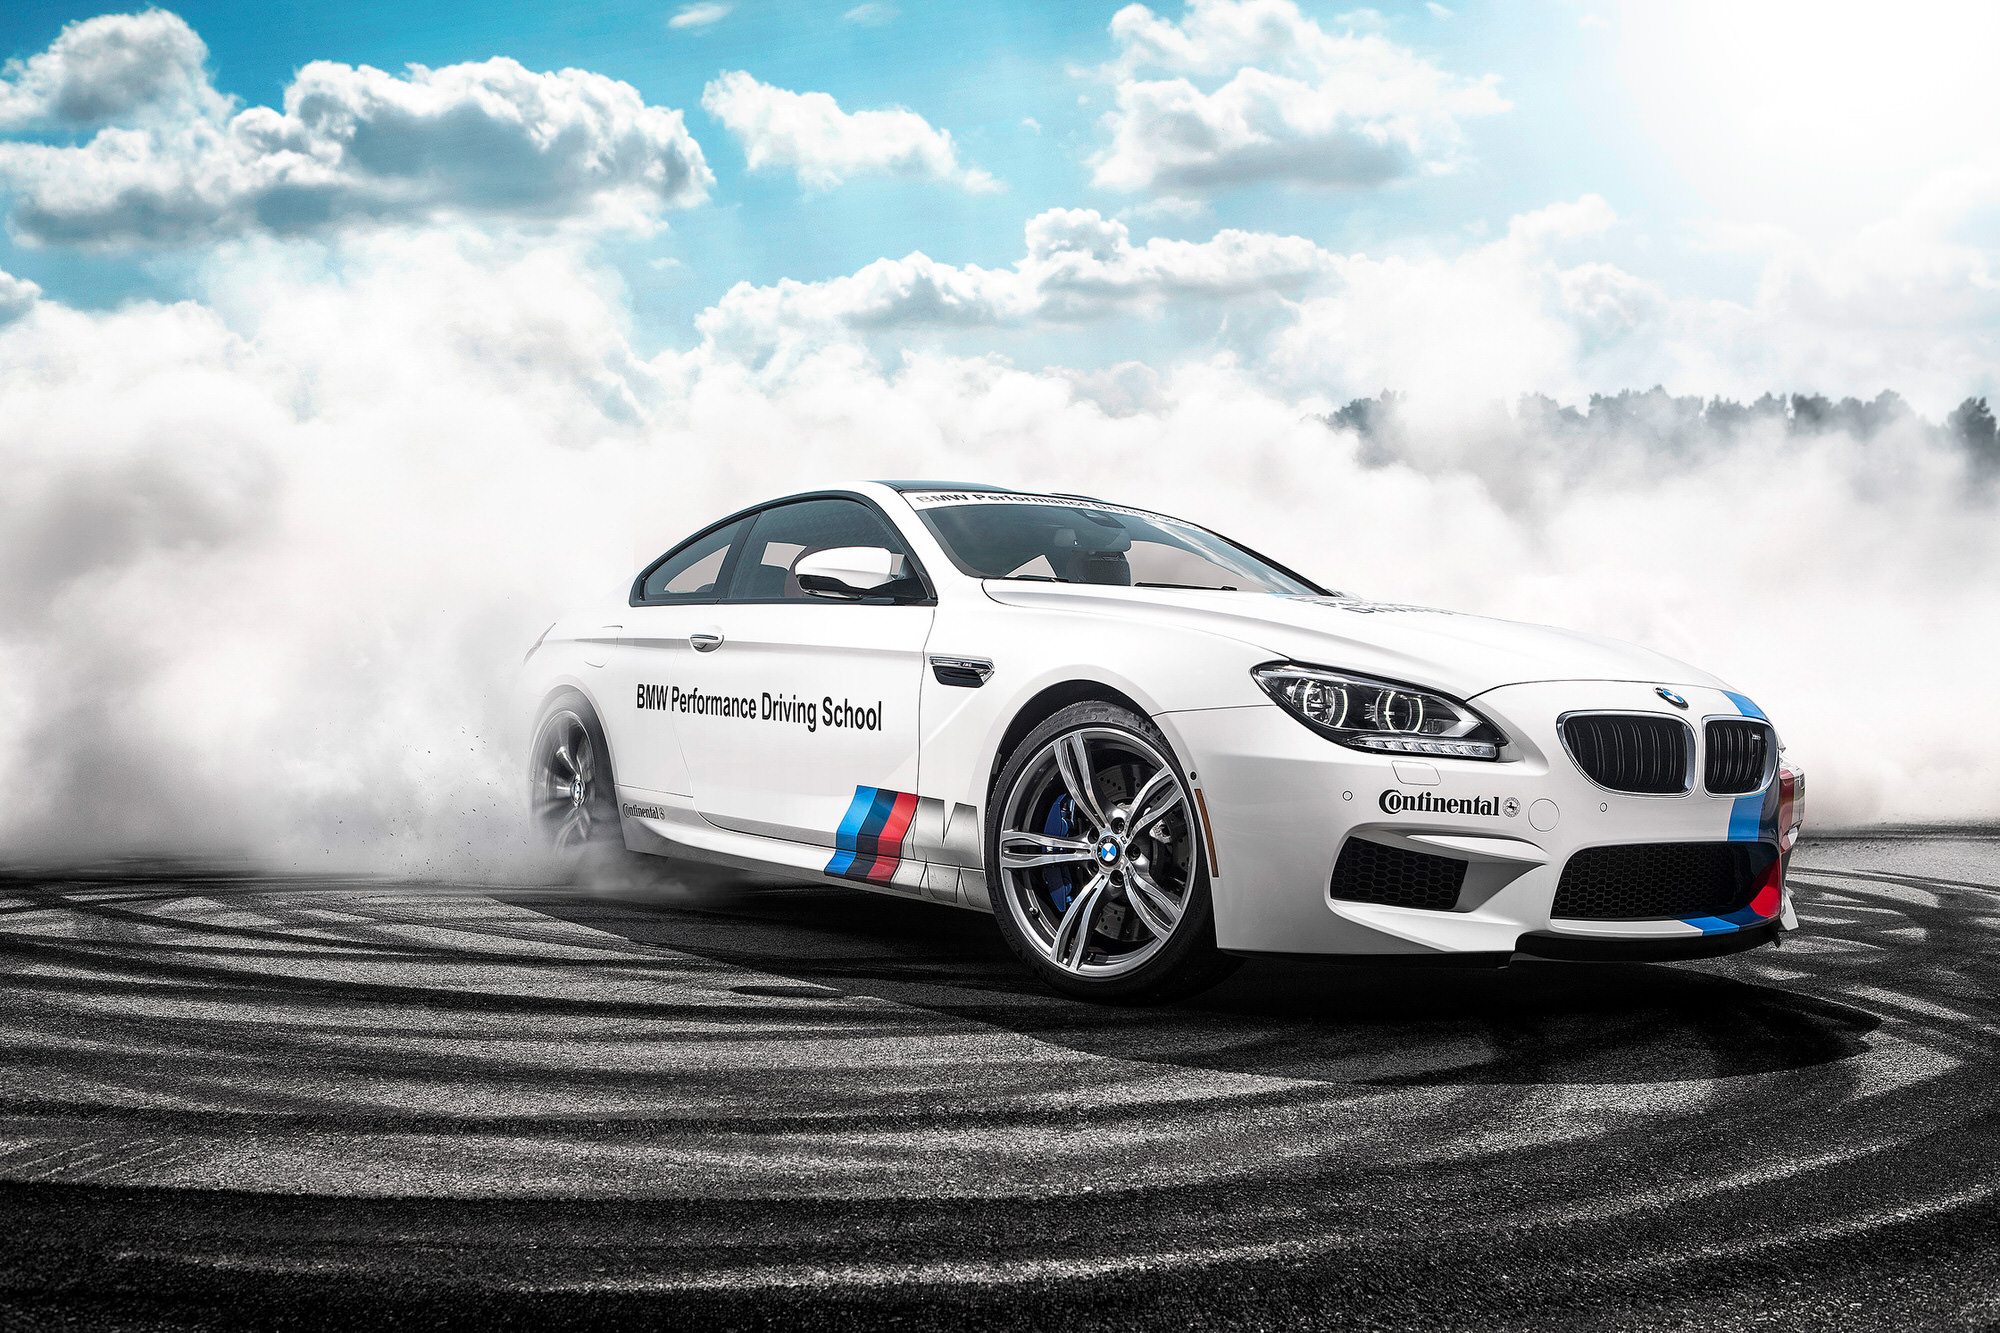 BMW Performance Center M6 Burnout